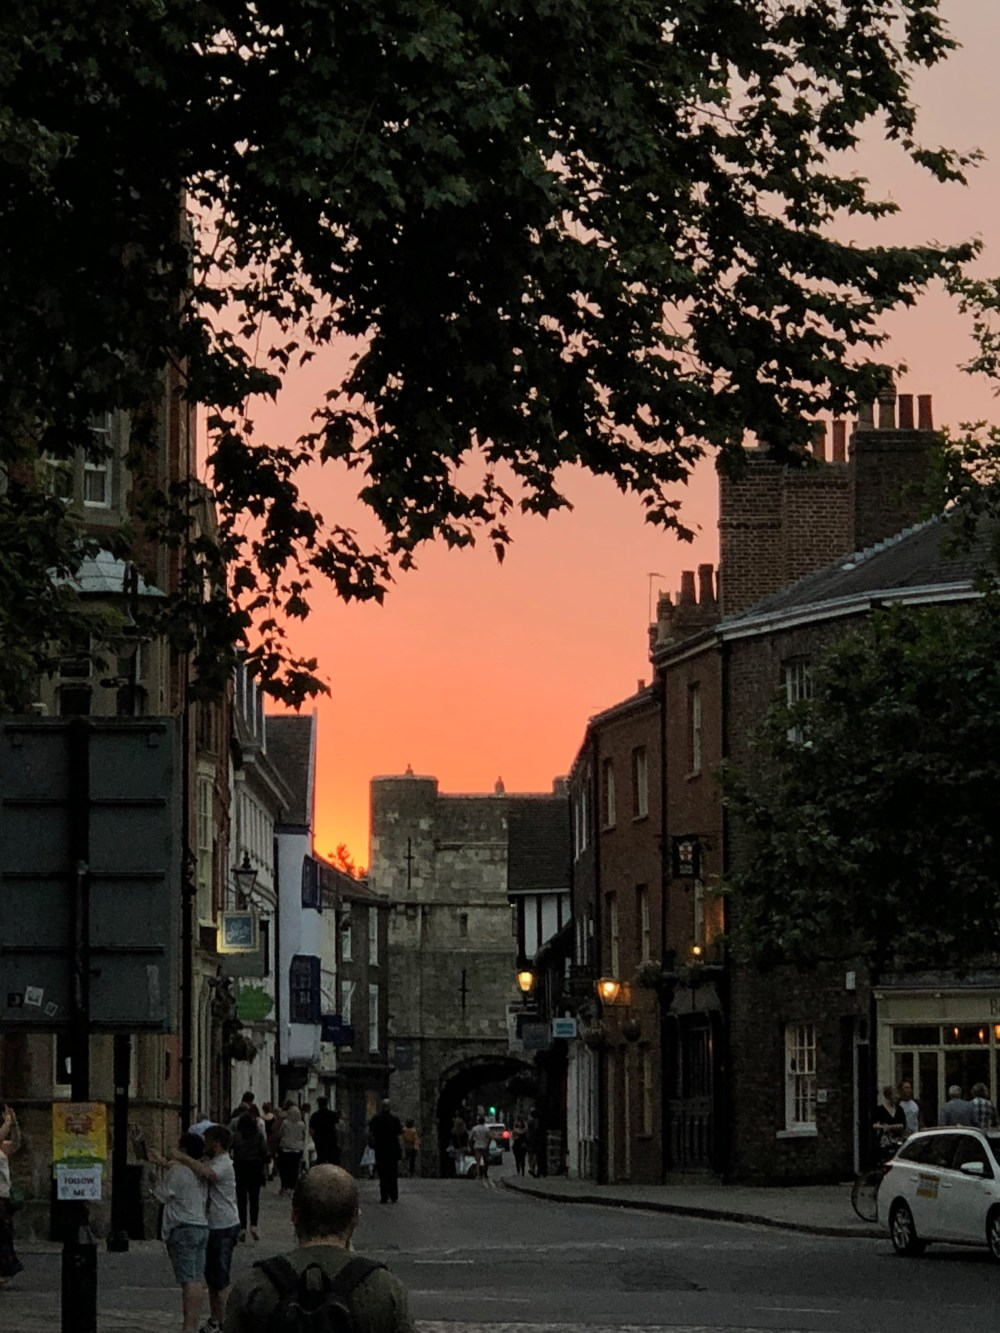 Sunset in York